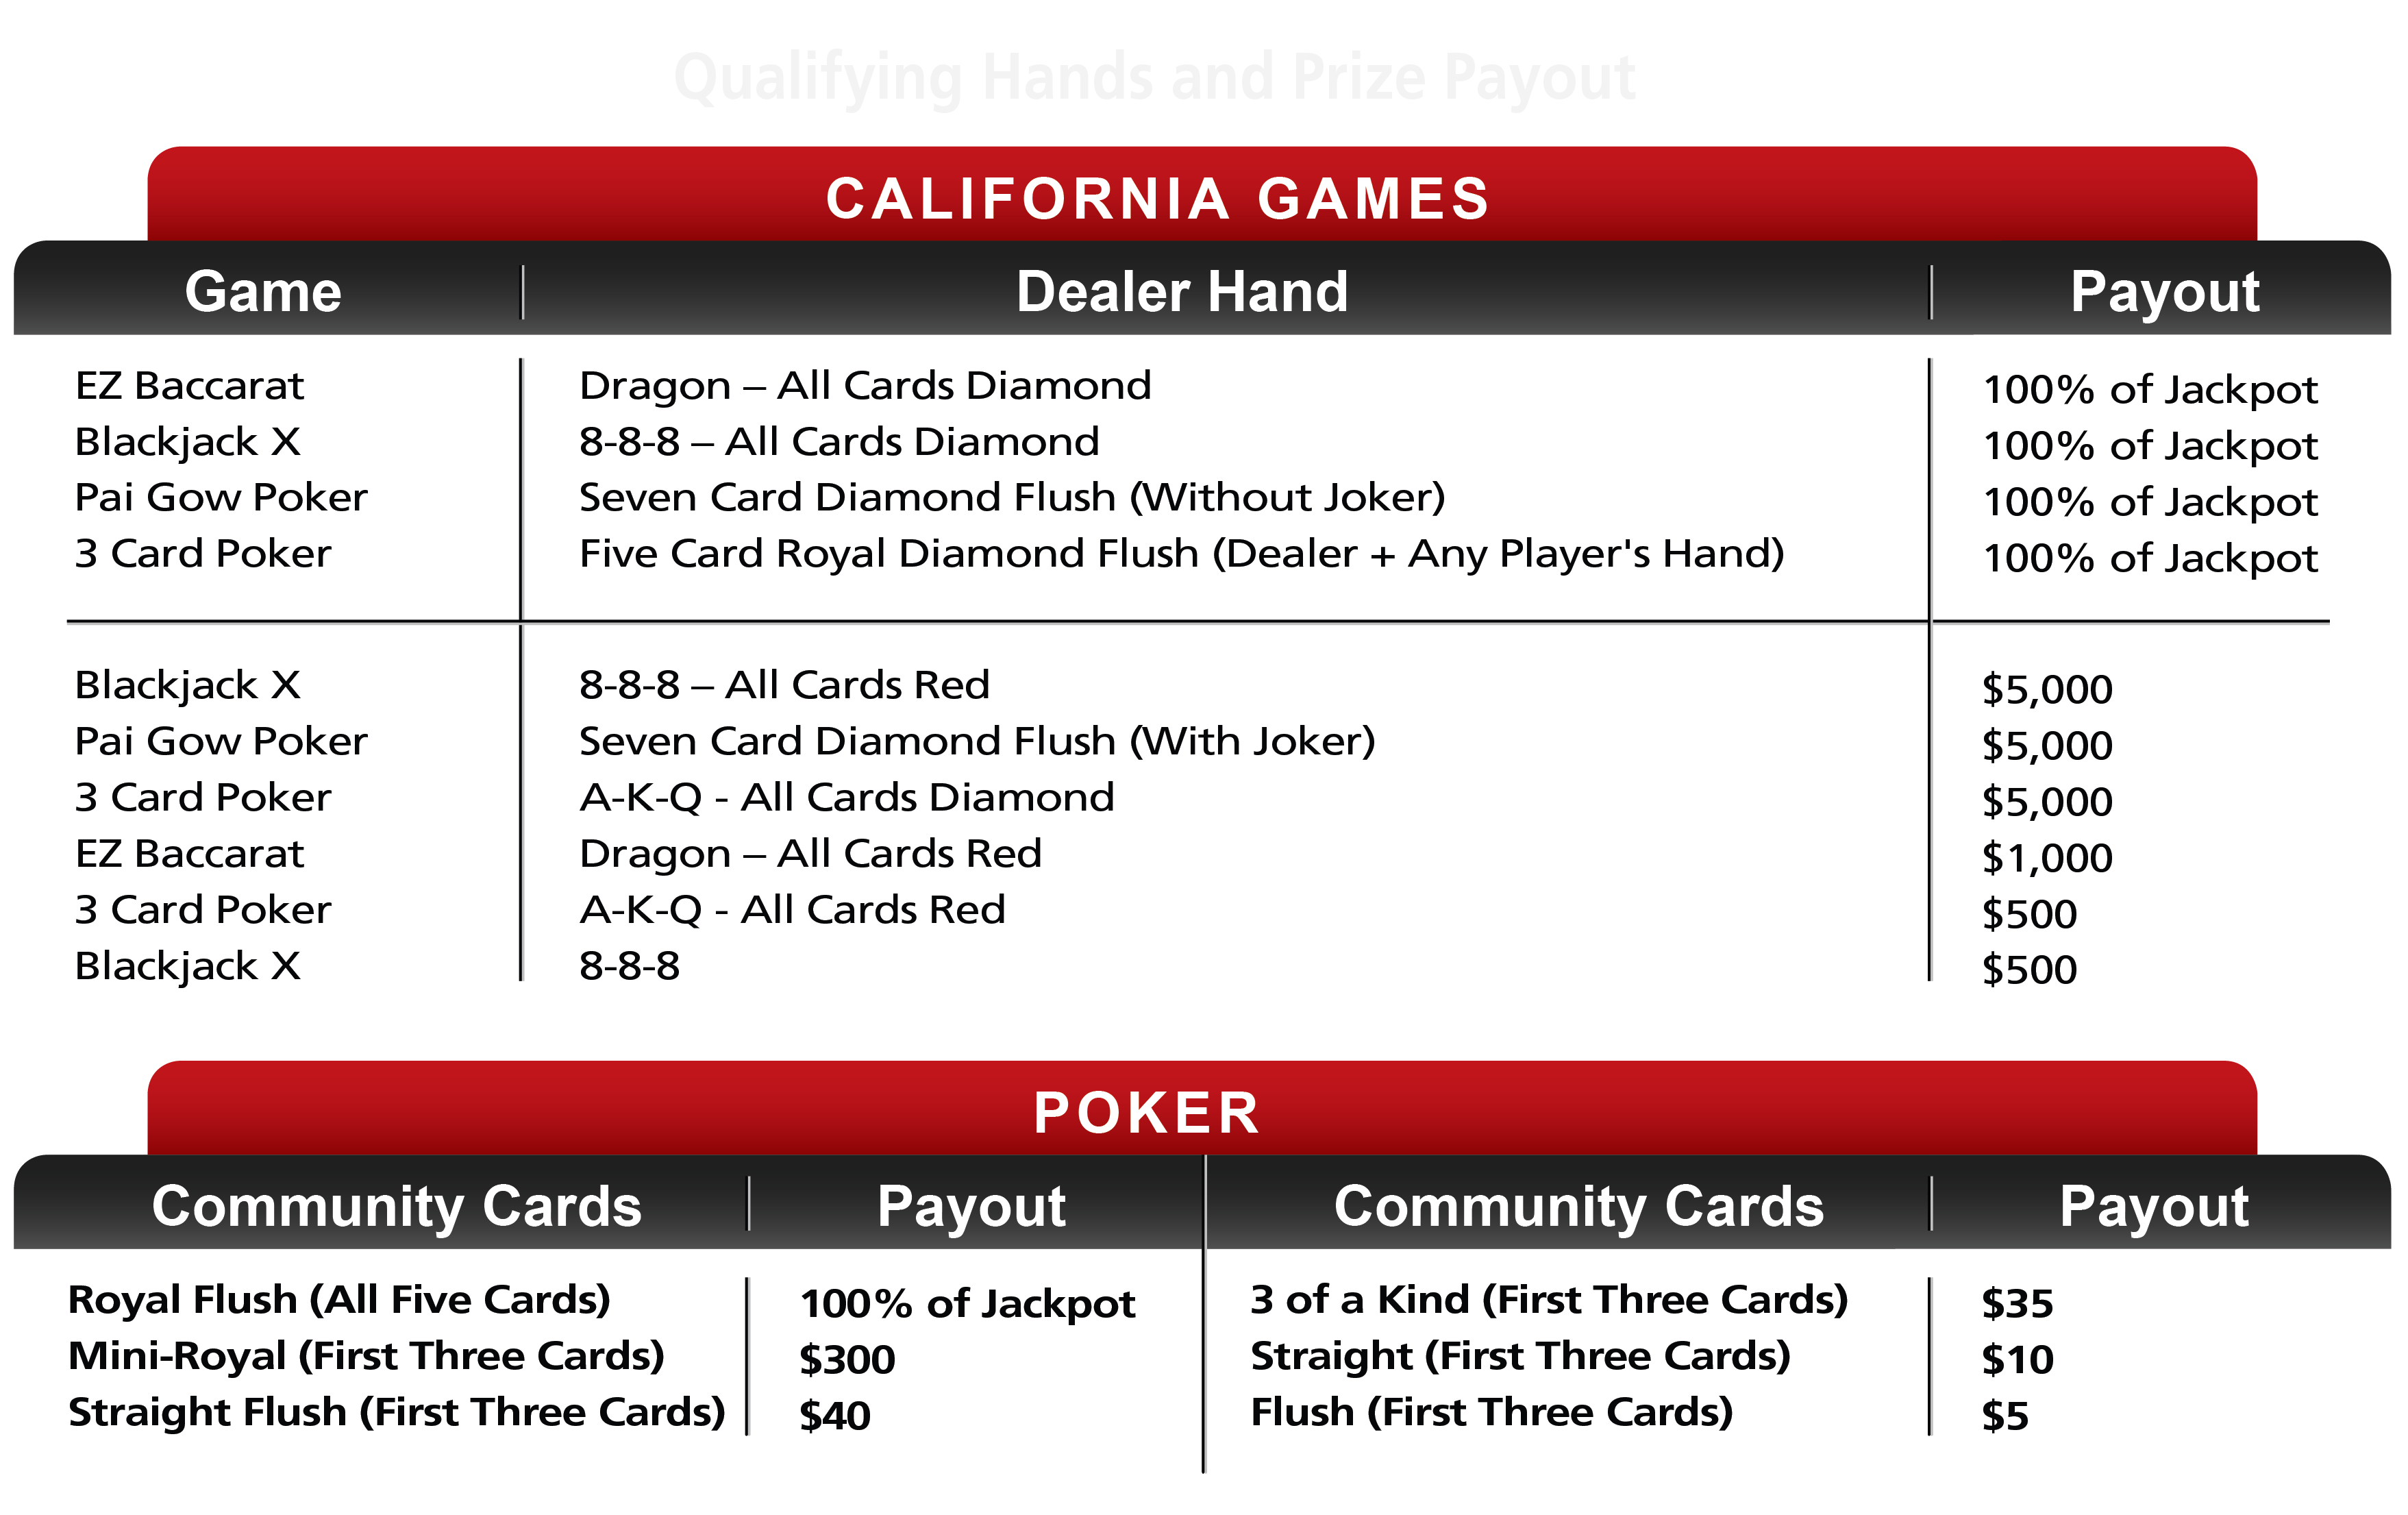 Qualifying Hands and Prize Payout